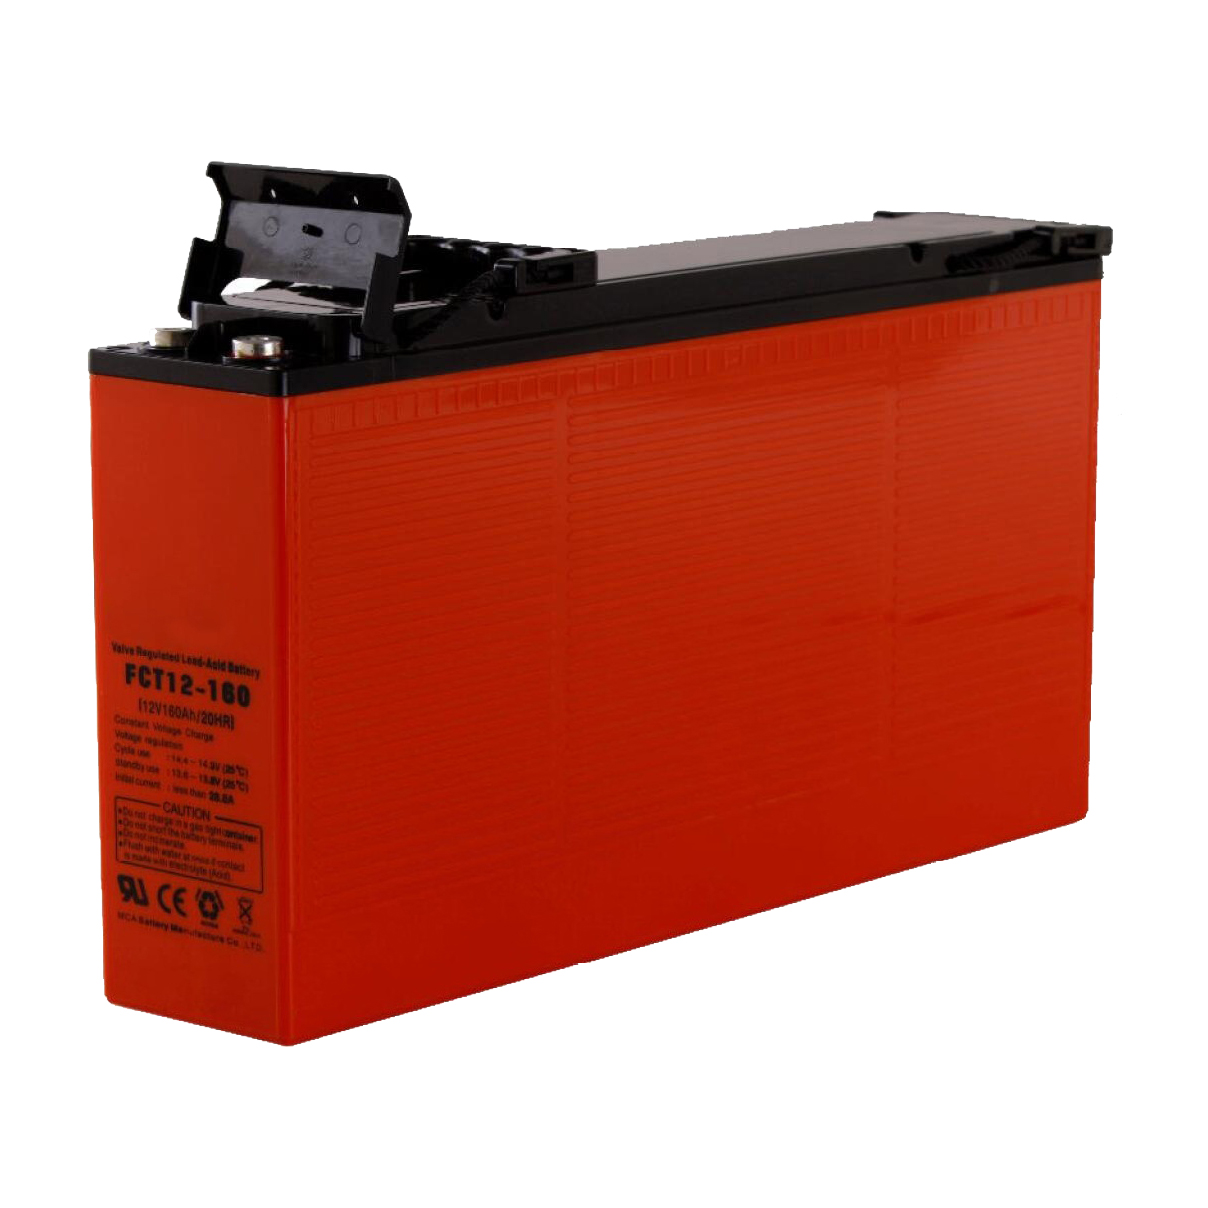 High quality 12V 155Ah Front Terminal Battery Quotes,China 12V 155Ah Front Terminal Battery Factory,12V 155Ah Front Terminal Battery Purchasing